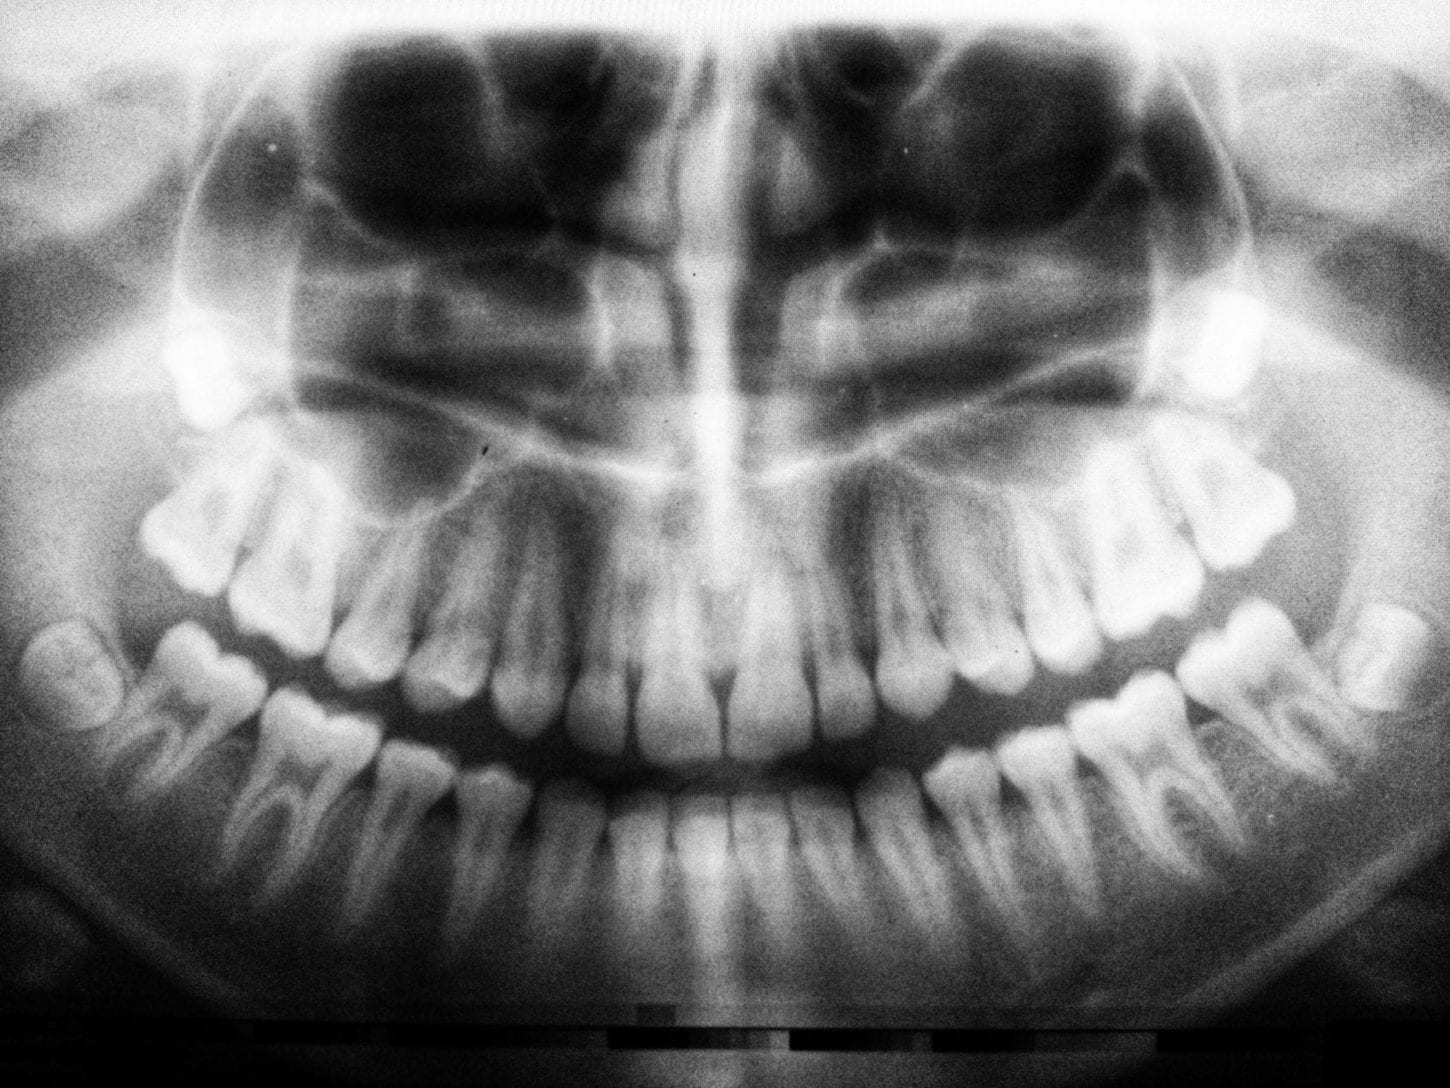 photo of dental x-rays